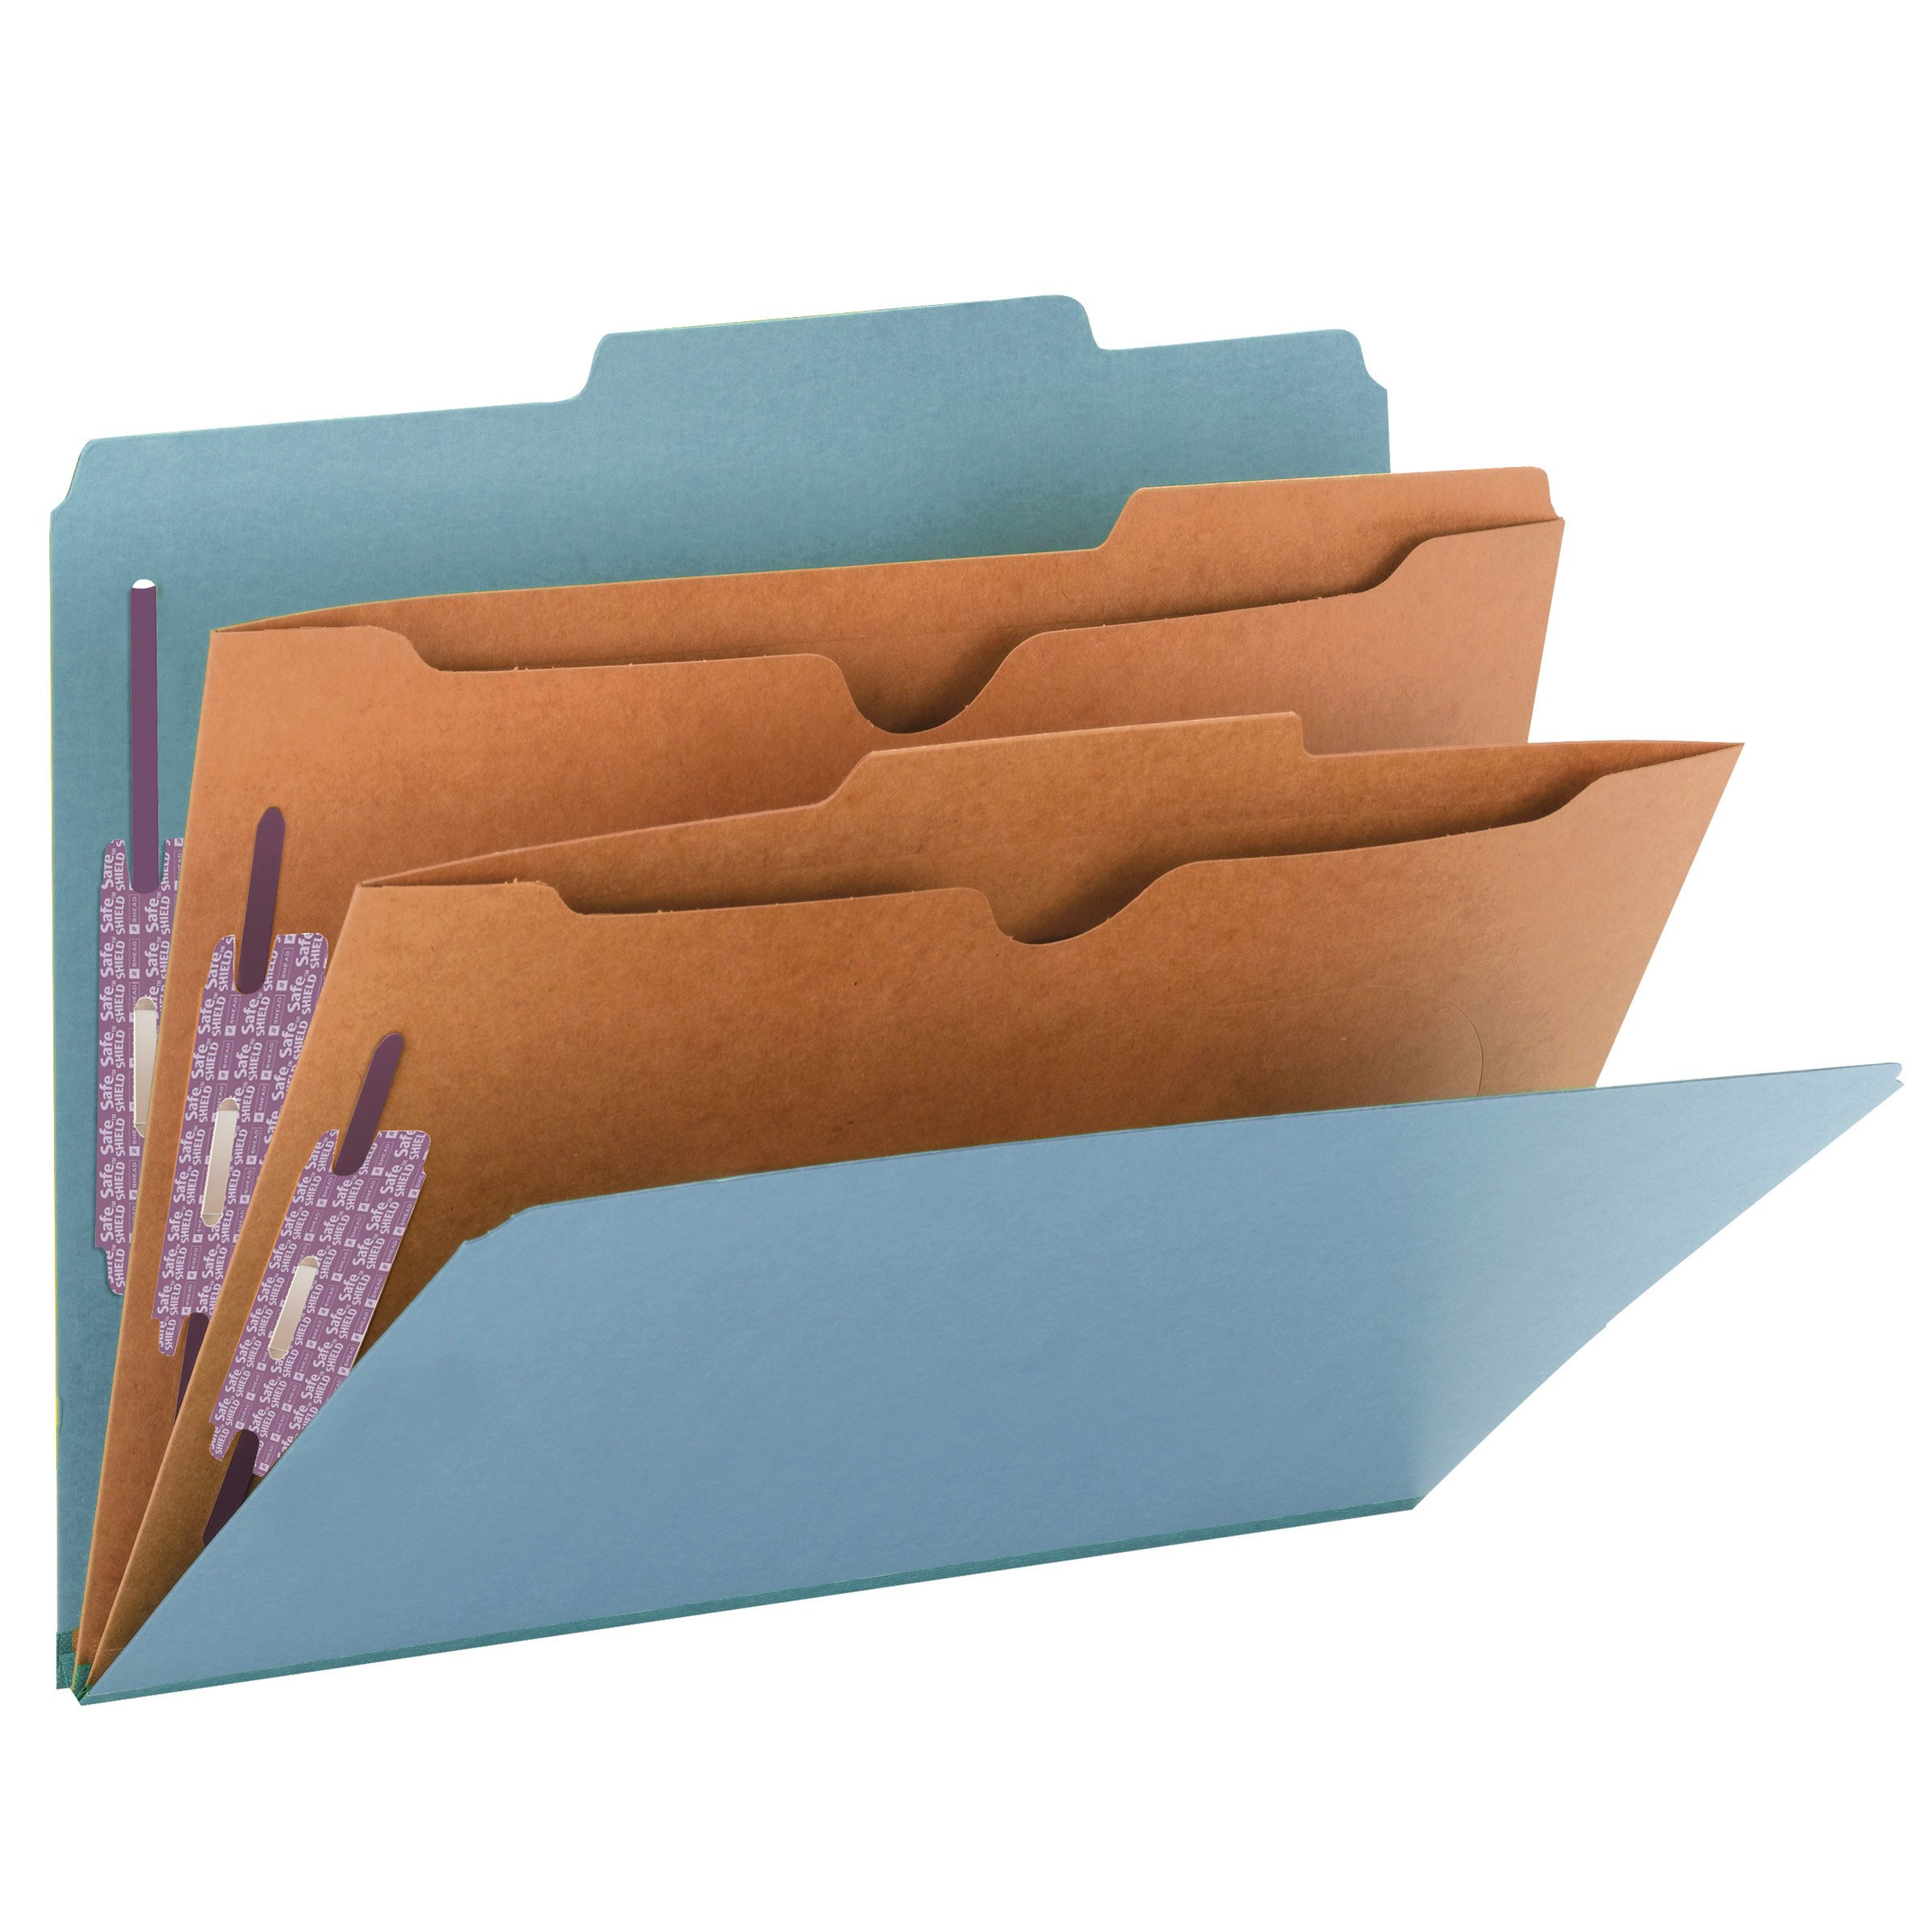 Smead Pressboard Classification File Folder with SafeSHIELD Fasteners, 2 Pocket Dividers, 2'' Expansion, Letter Size, Blue, 10 per Box (14081) by Smead